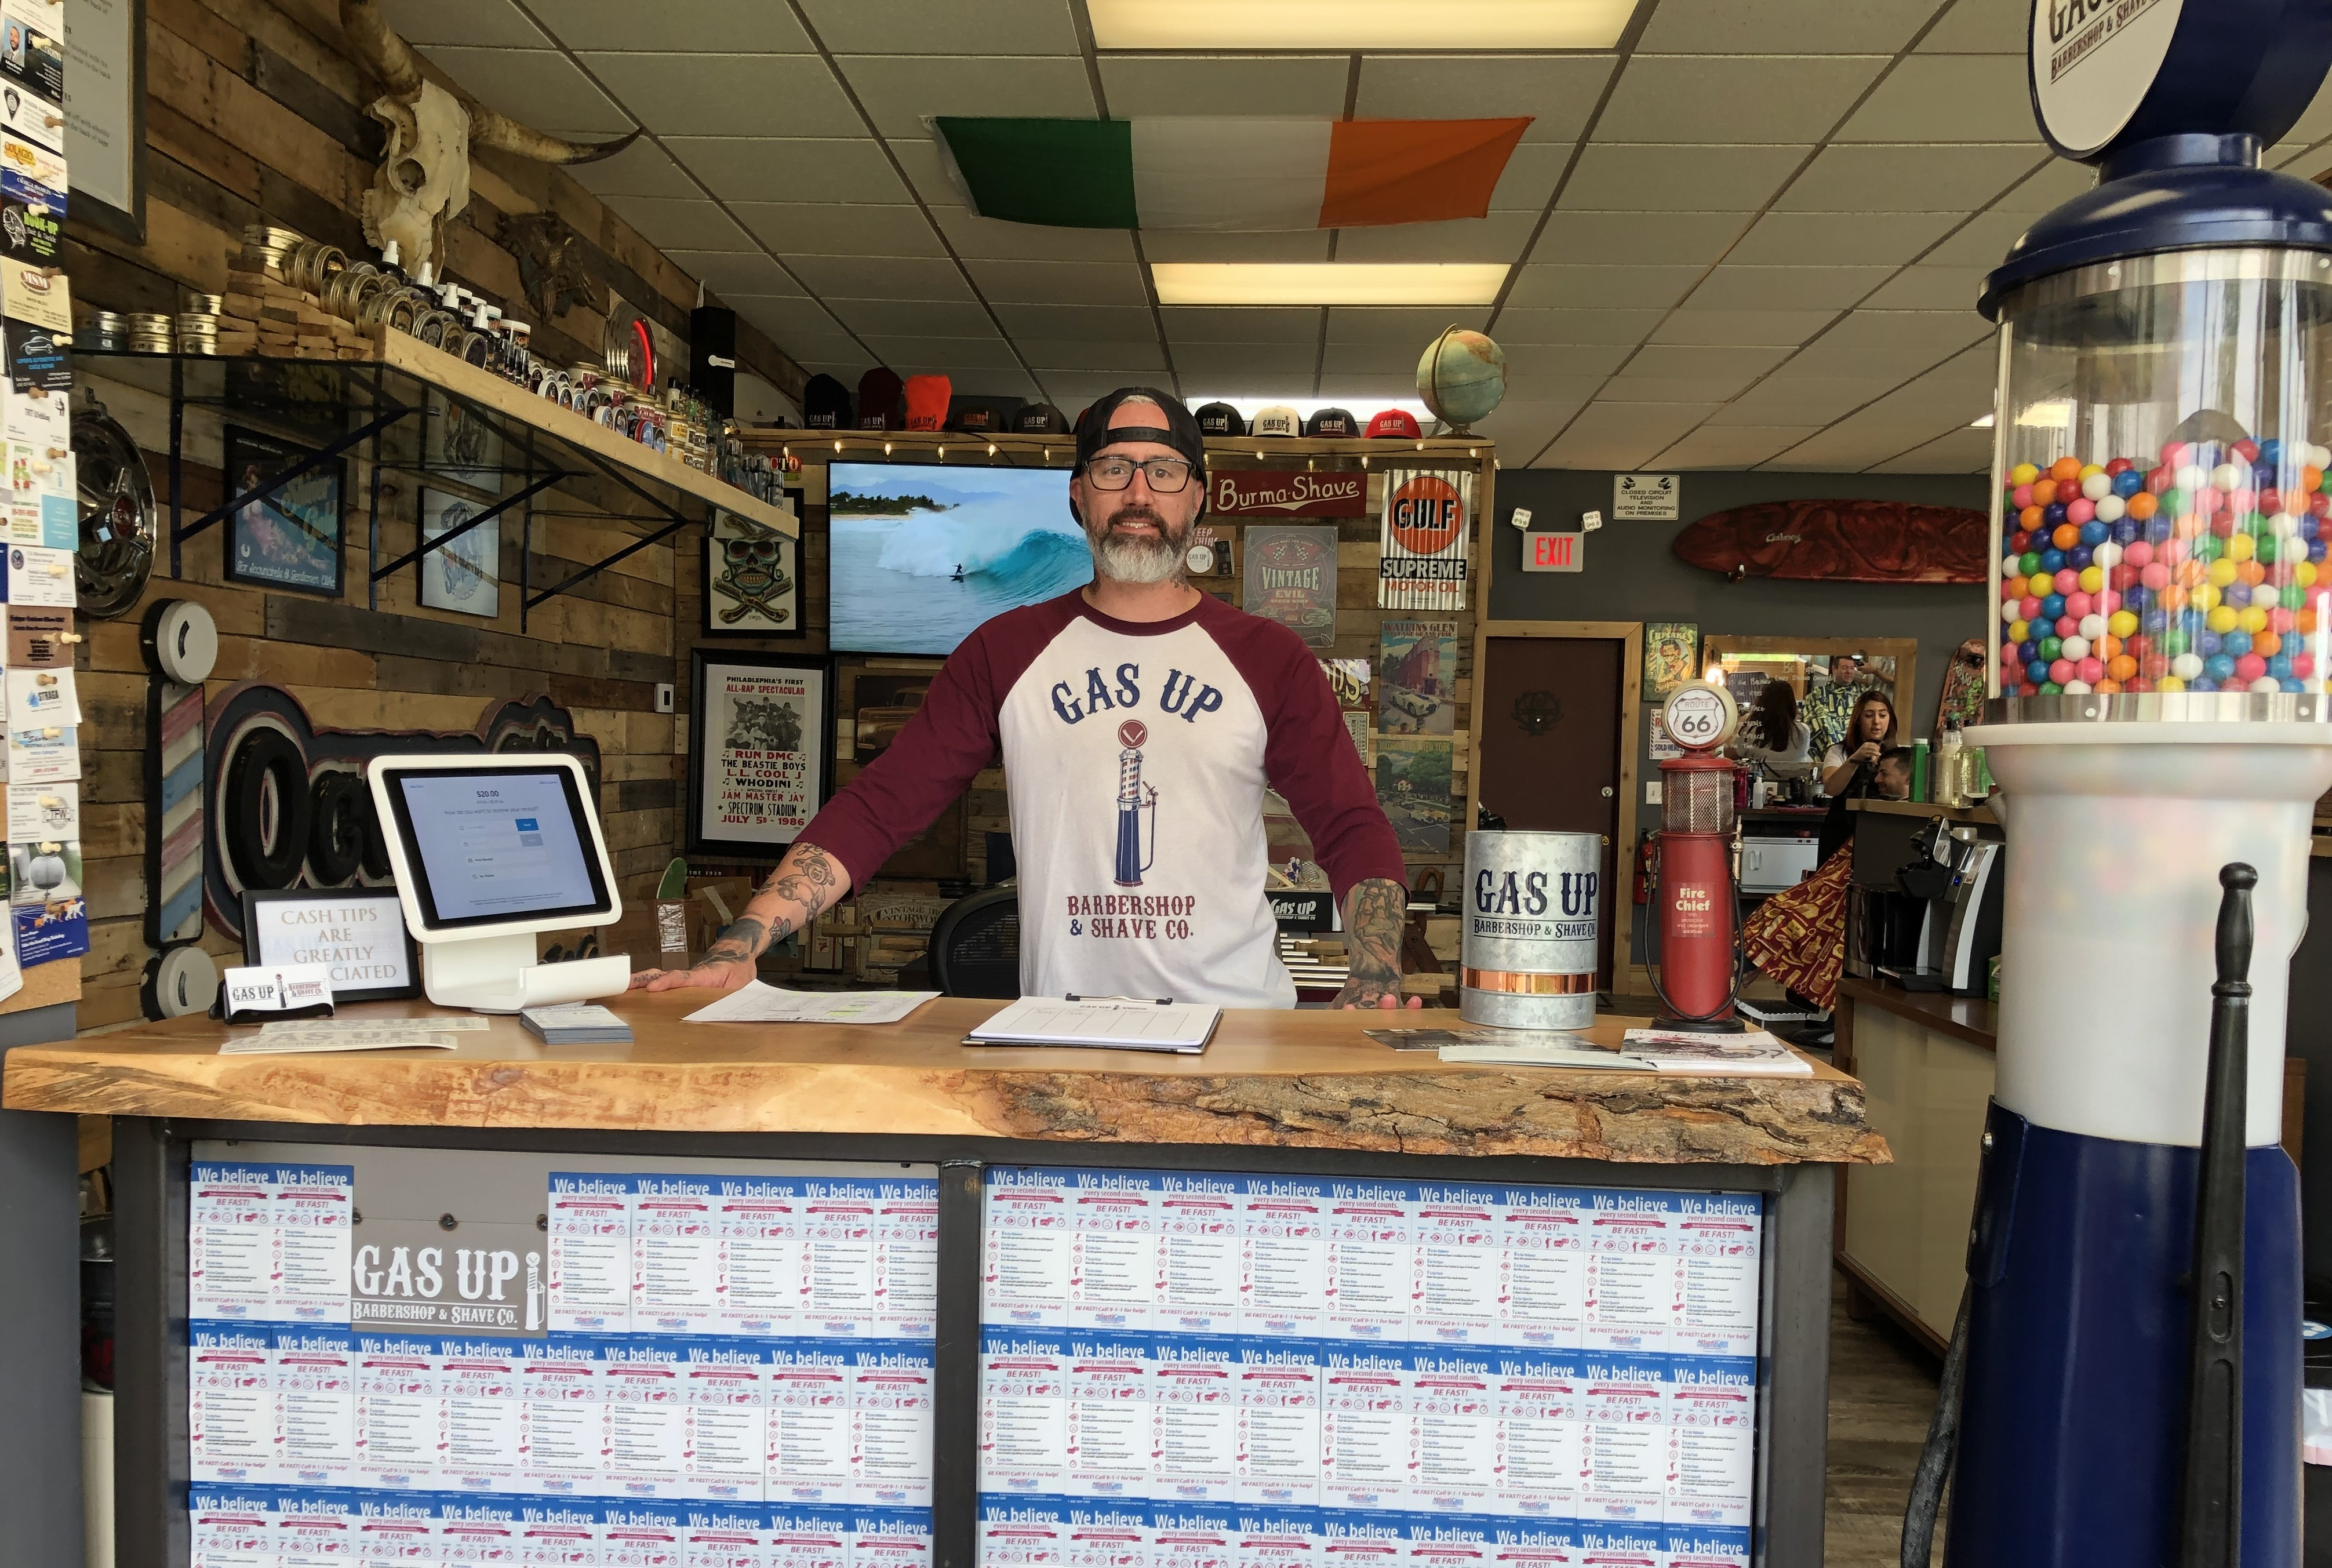 Barbershop helps AtlantiCare diffuse message about dialing